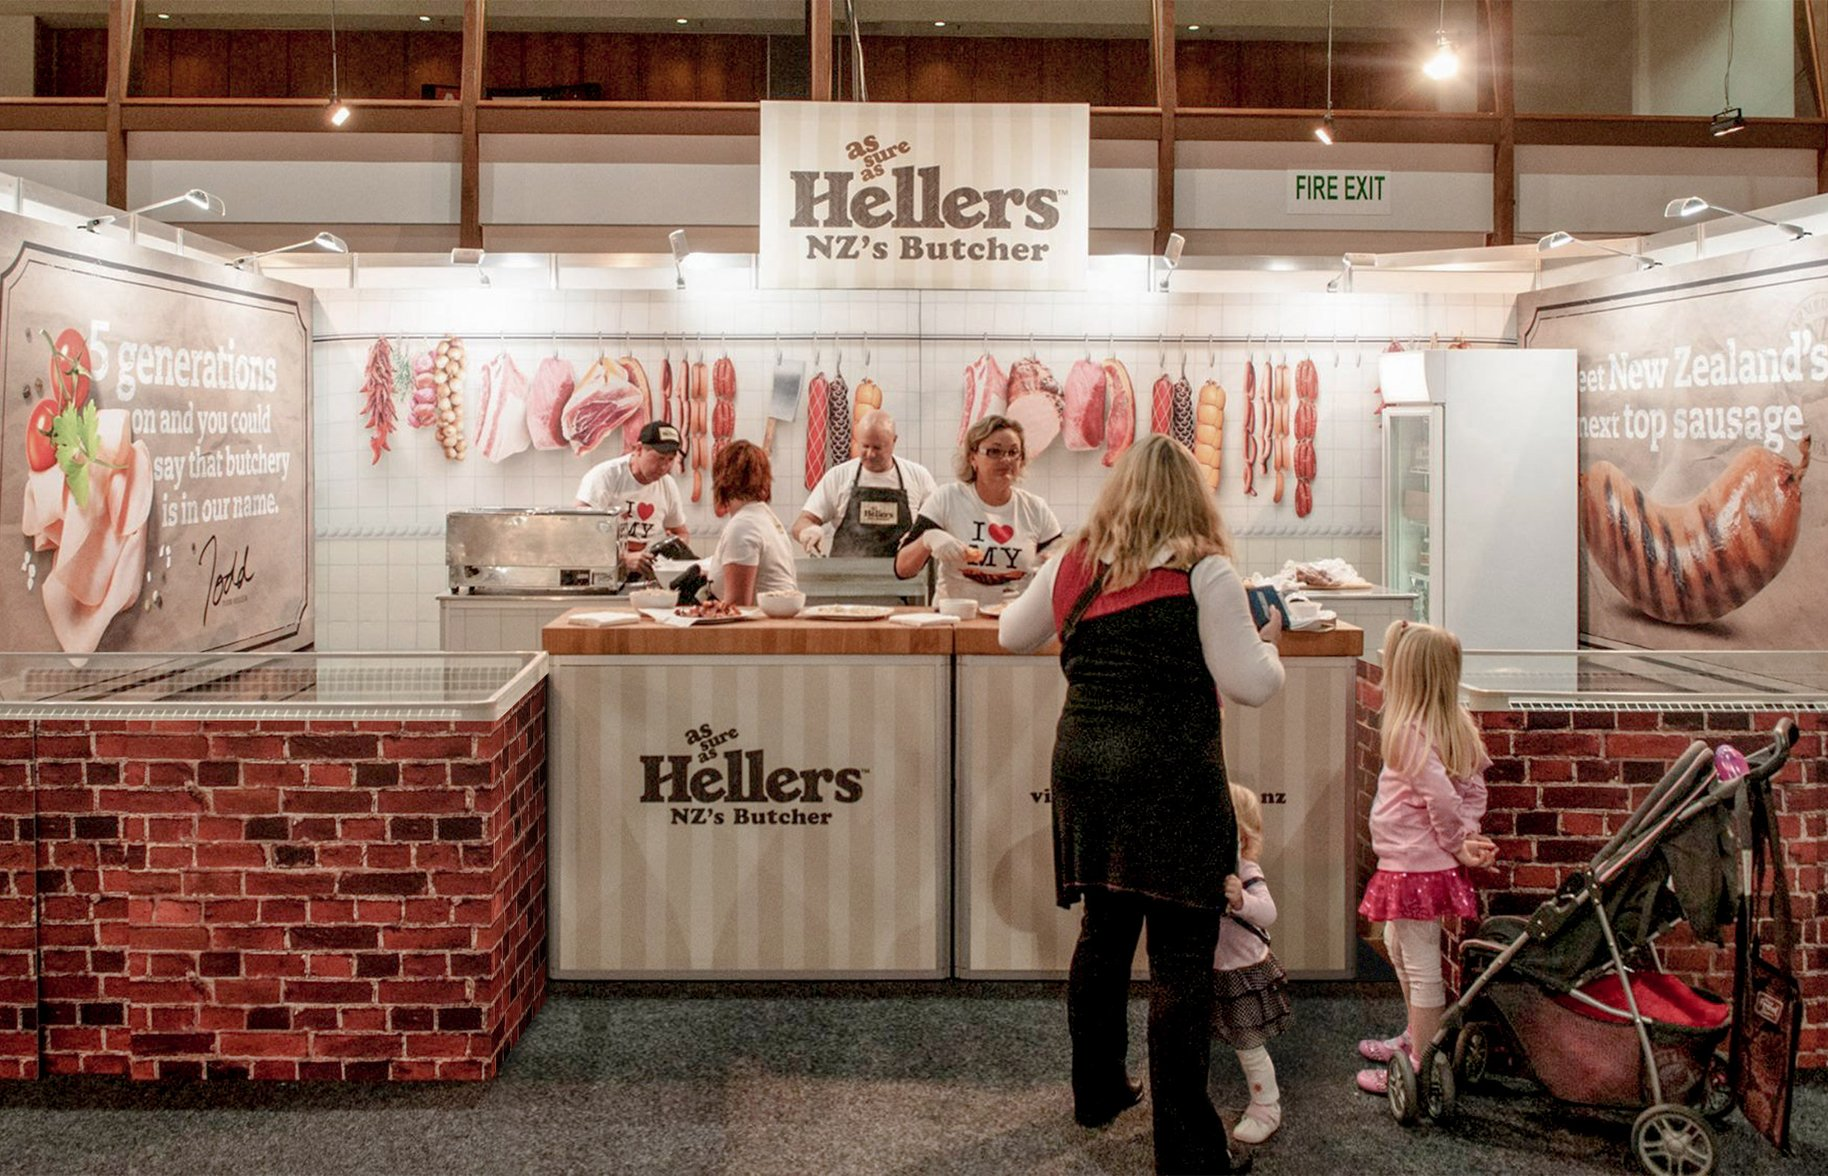 Hellers food show stand spatial design